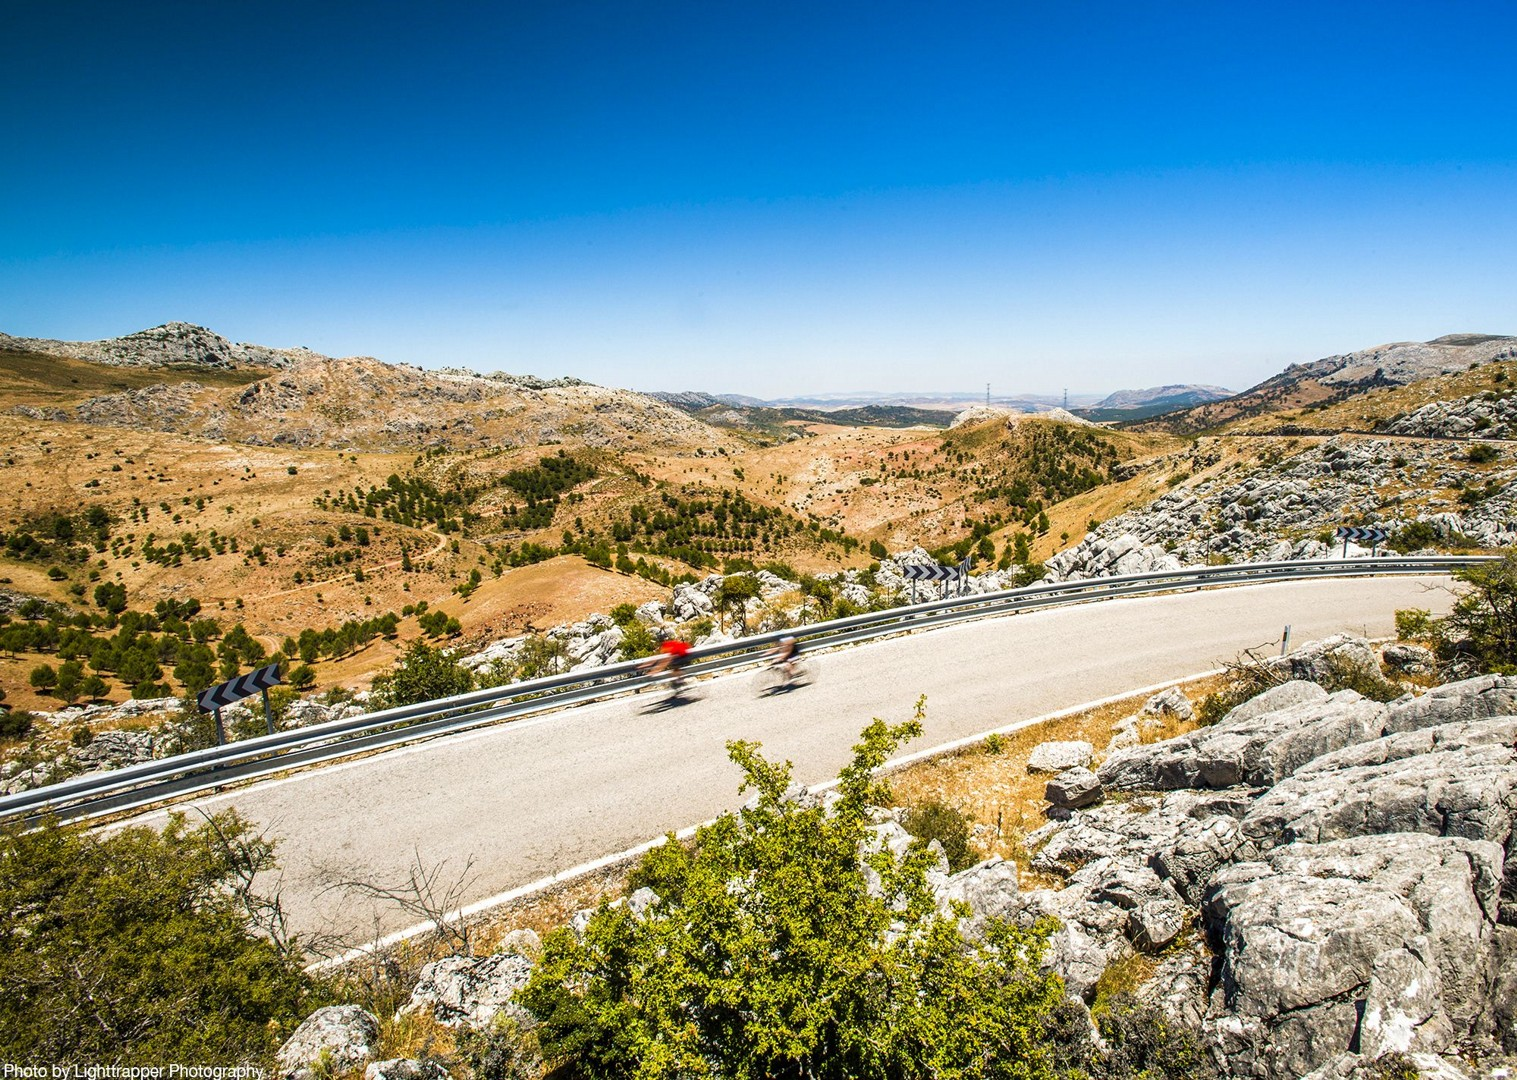 guided-road-cycling-tour-spanish-limestone-mountains-saddle-skedaddle.jpg - Southern Spain - Roads of Ronda - Road Cycling